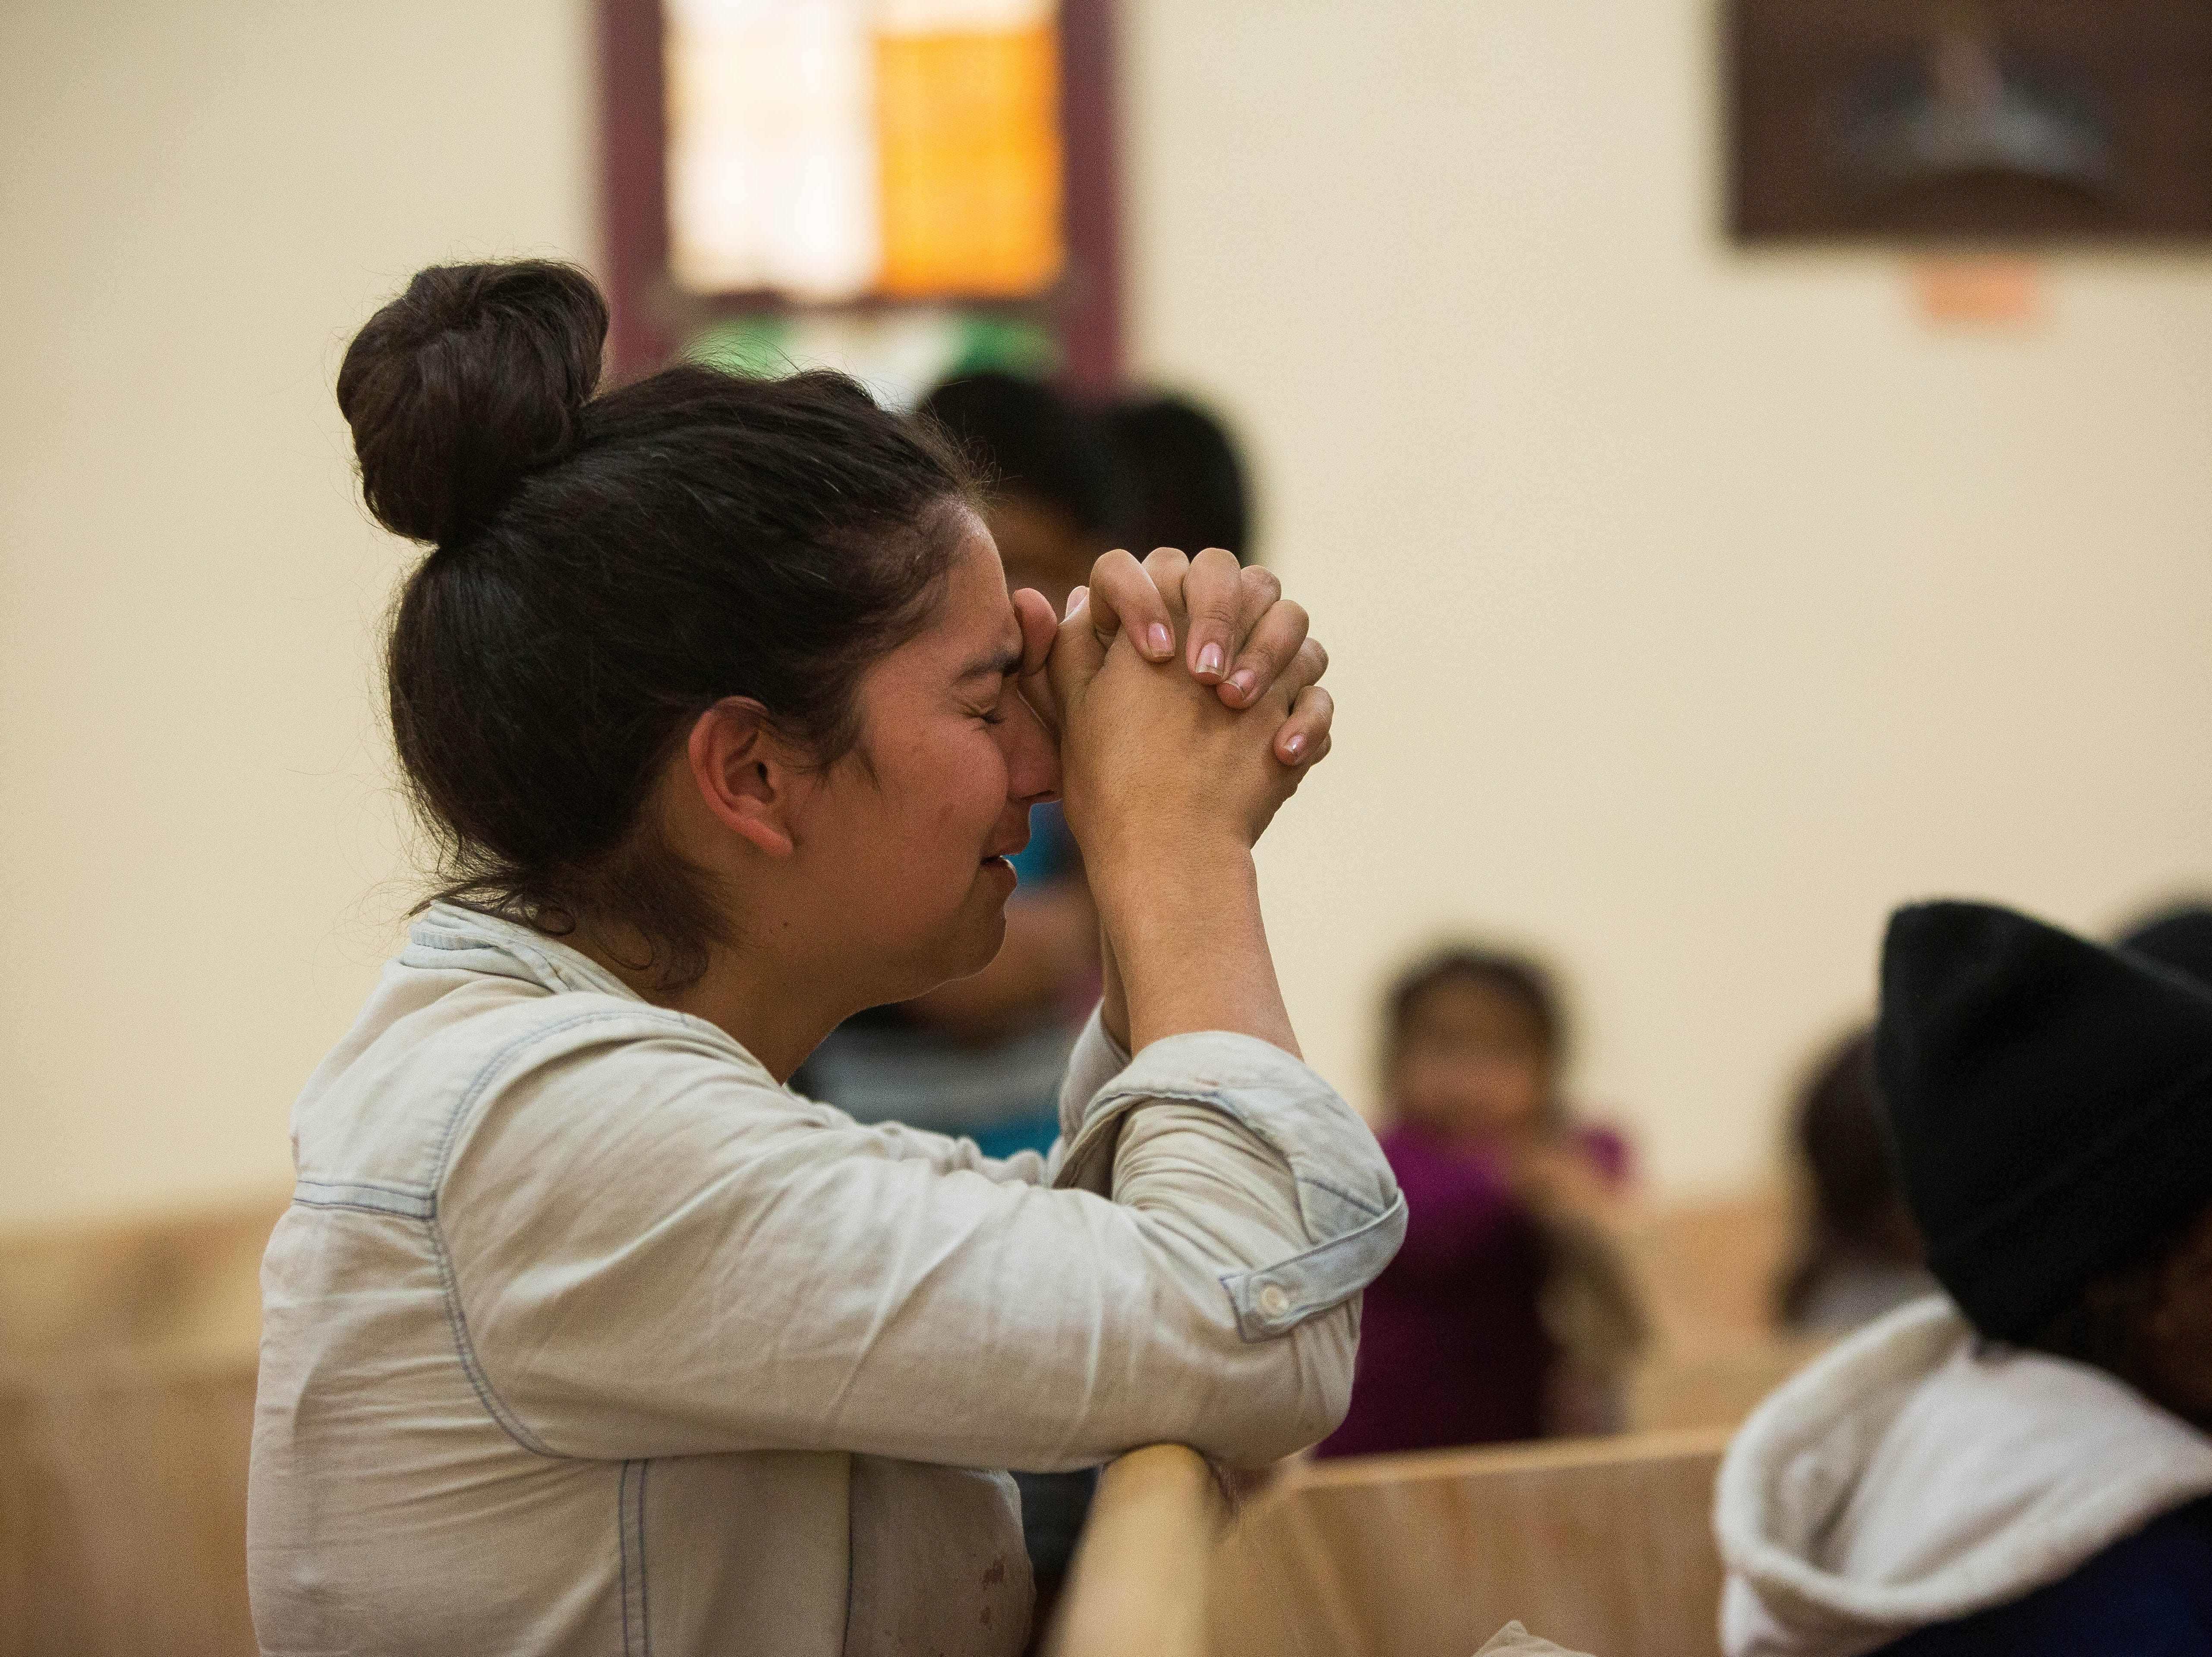 Riccy, an immigrant seeking asylum from Honduras joins the 22 other immigrants in a prayer lead by Pastor George Miller and Jorge Renteria at El Calvario United Methodist Church, Tuesday, October 30, 2018.